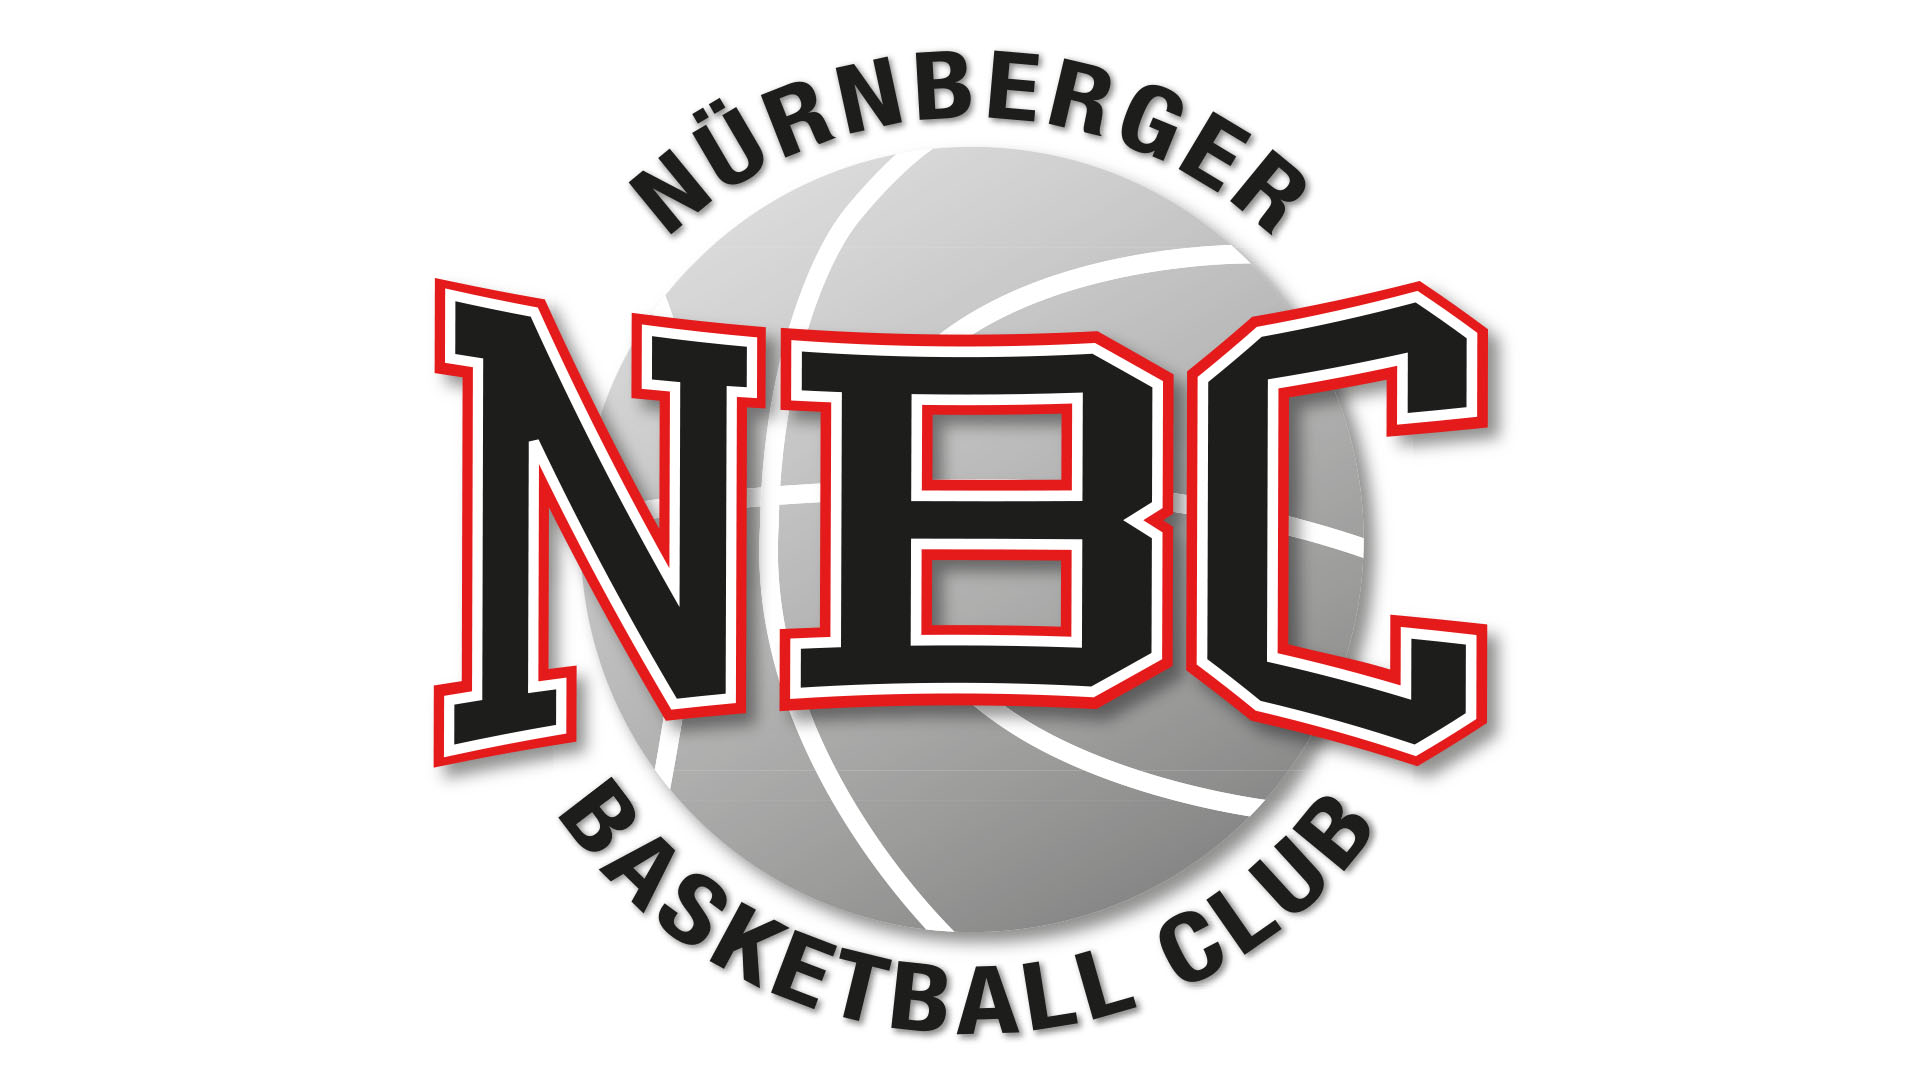 Nürnberger-Basketball-Club